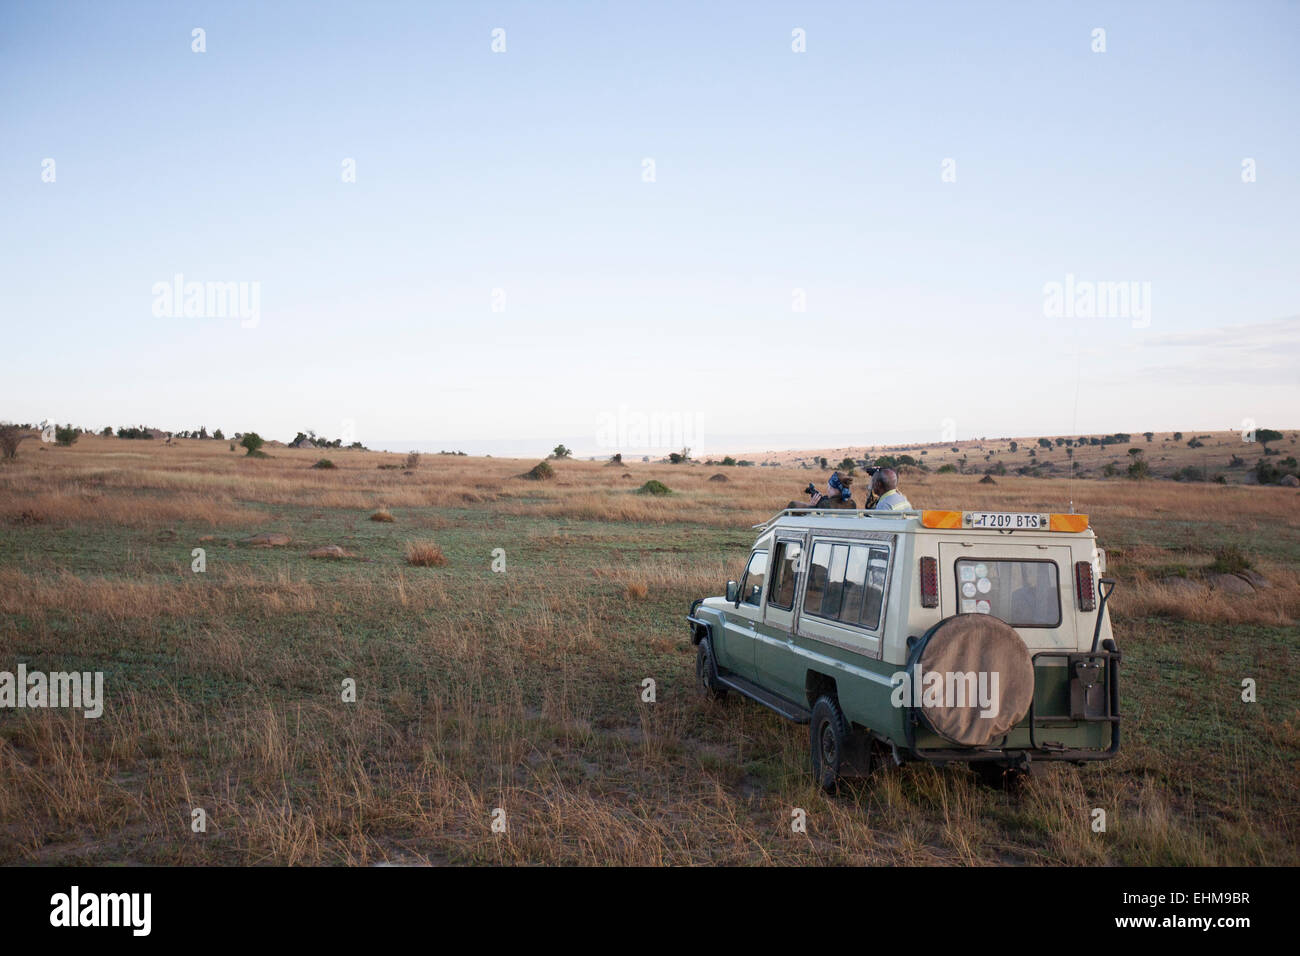 Tourists on a game drive in the Serengeti. - Stock Image